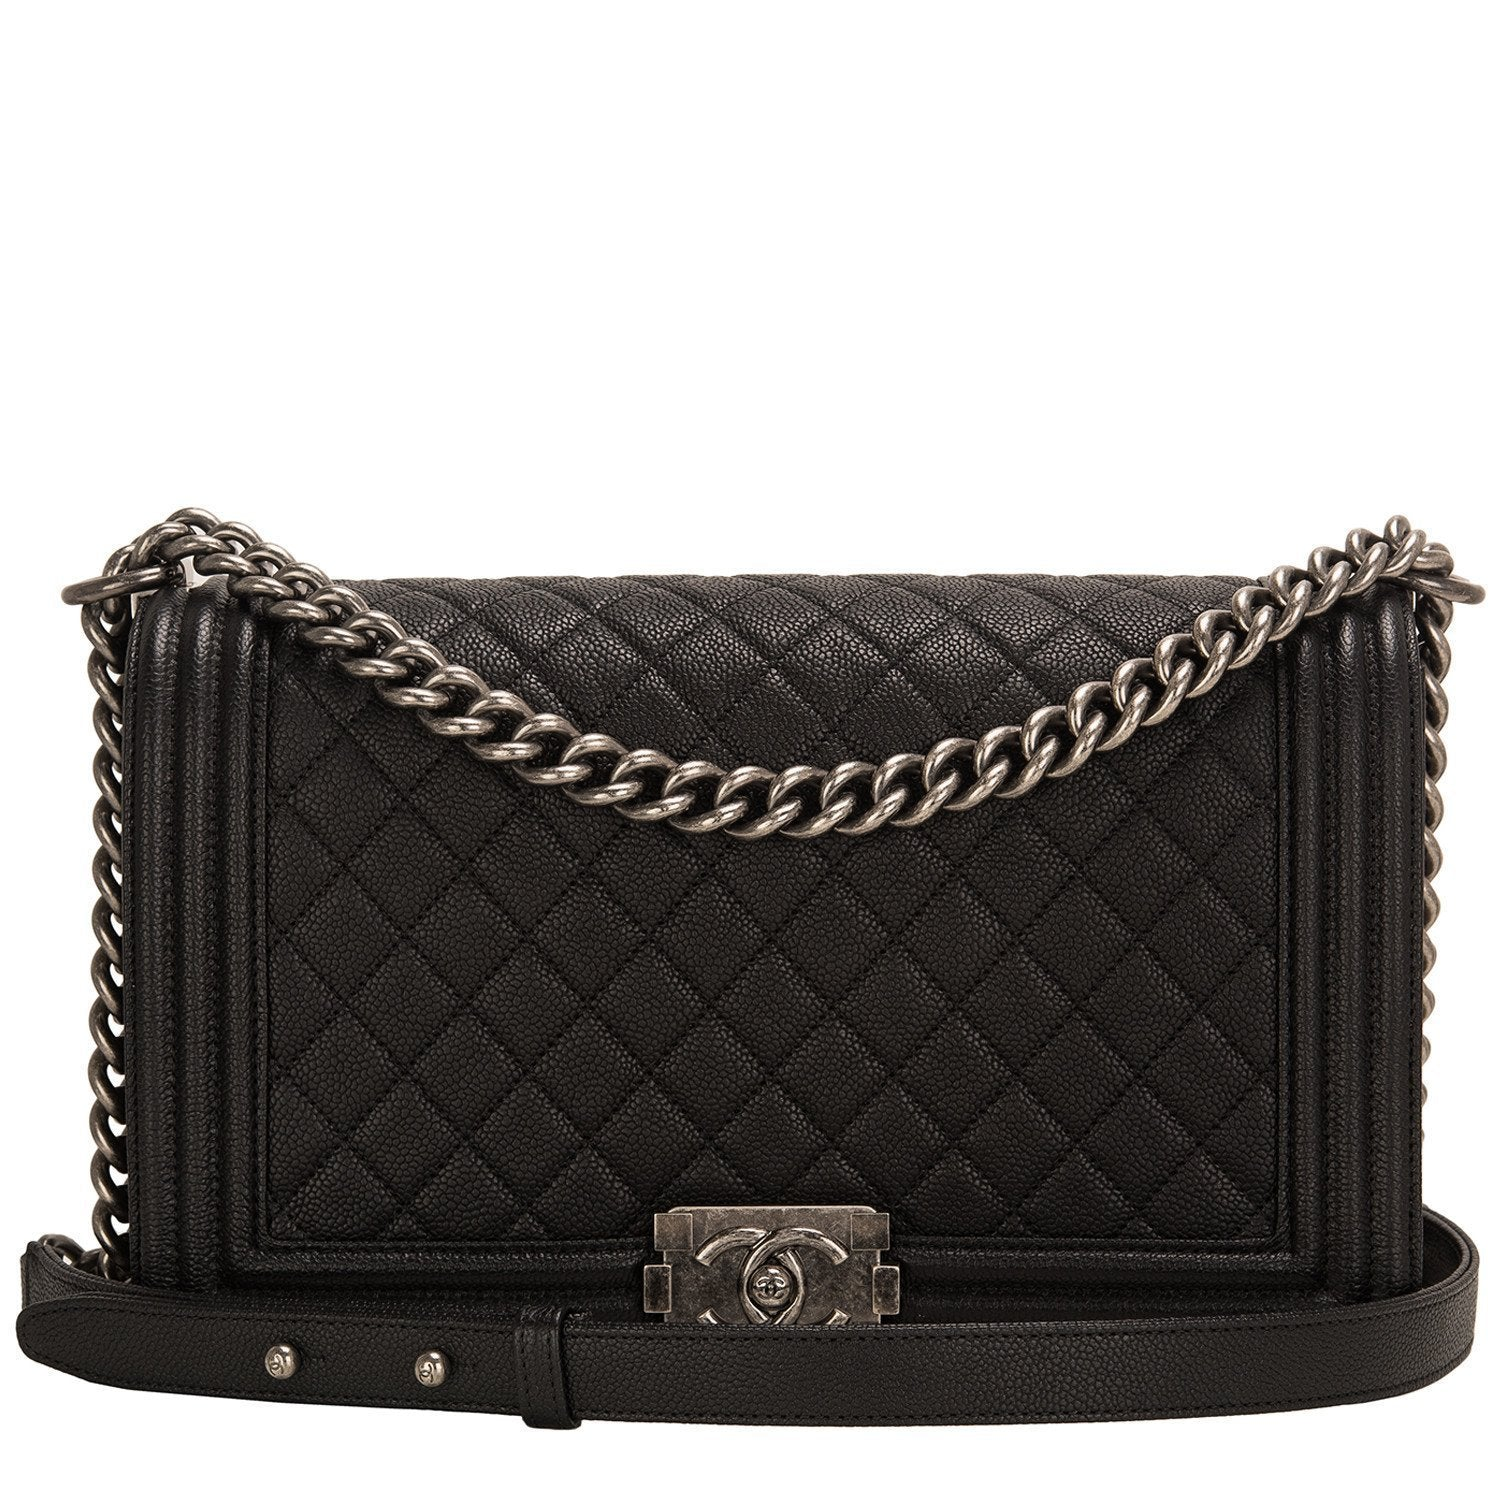 Chanel Black Quilted Caviar New Medium Boy Bag Handbags